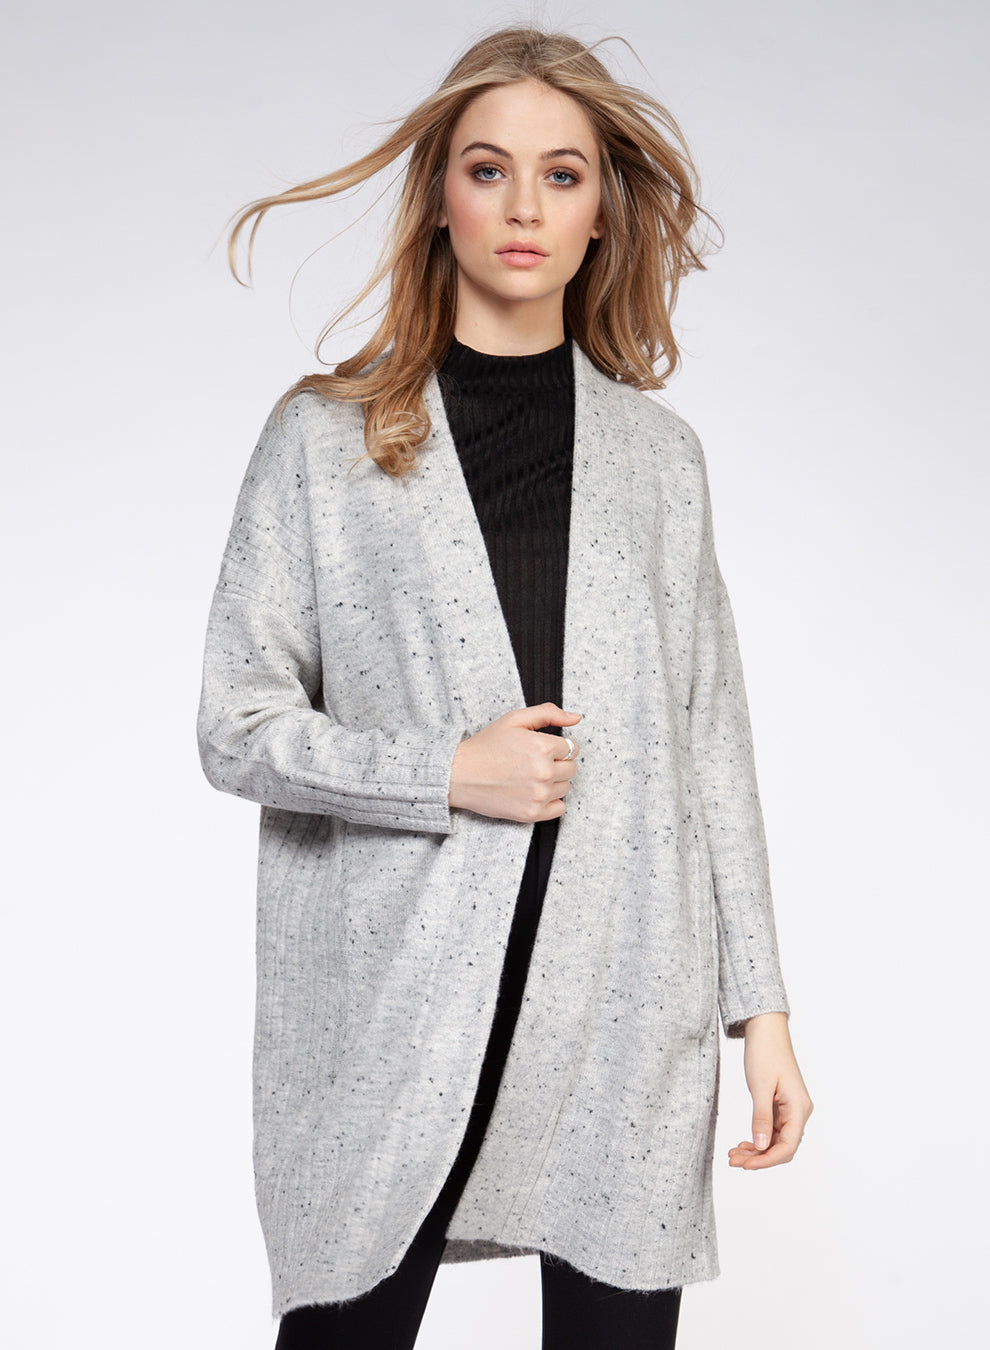 Speckled Grey Open Front Cardigan Sweater